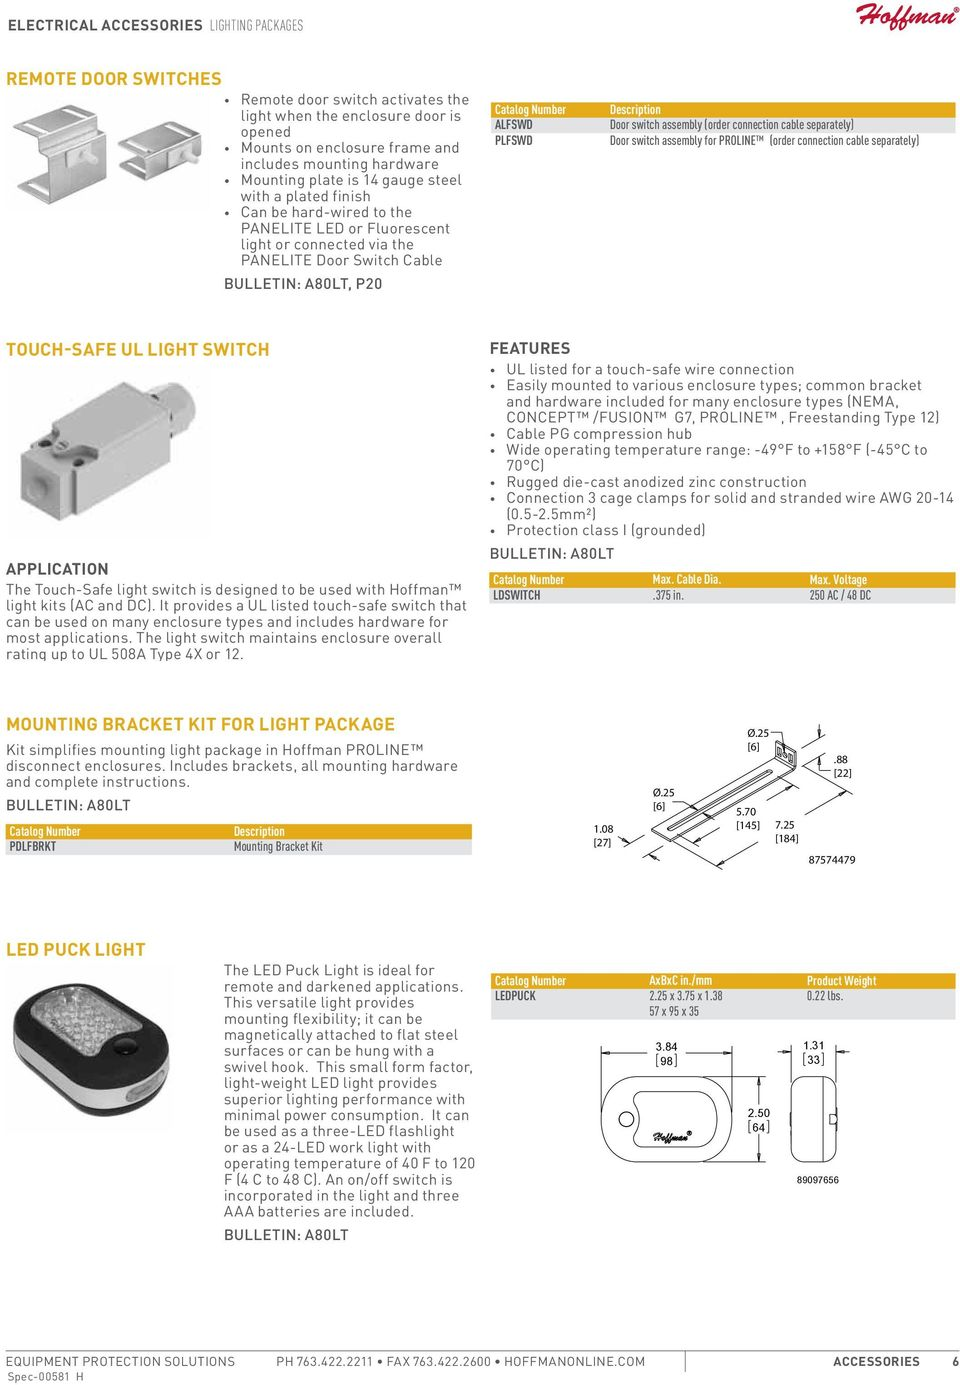 separately) Door switch assembly for PROLINE (order connection cable separately) Touch-Safe UL Light Switch APPLICATION The Touch-Safe light switch is designed to be used with Hoffman light kits (AC